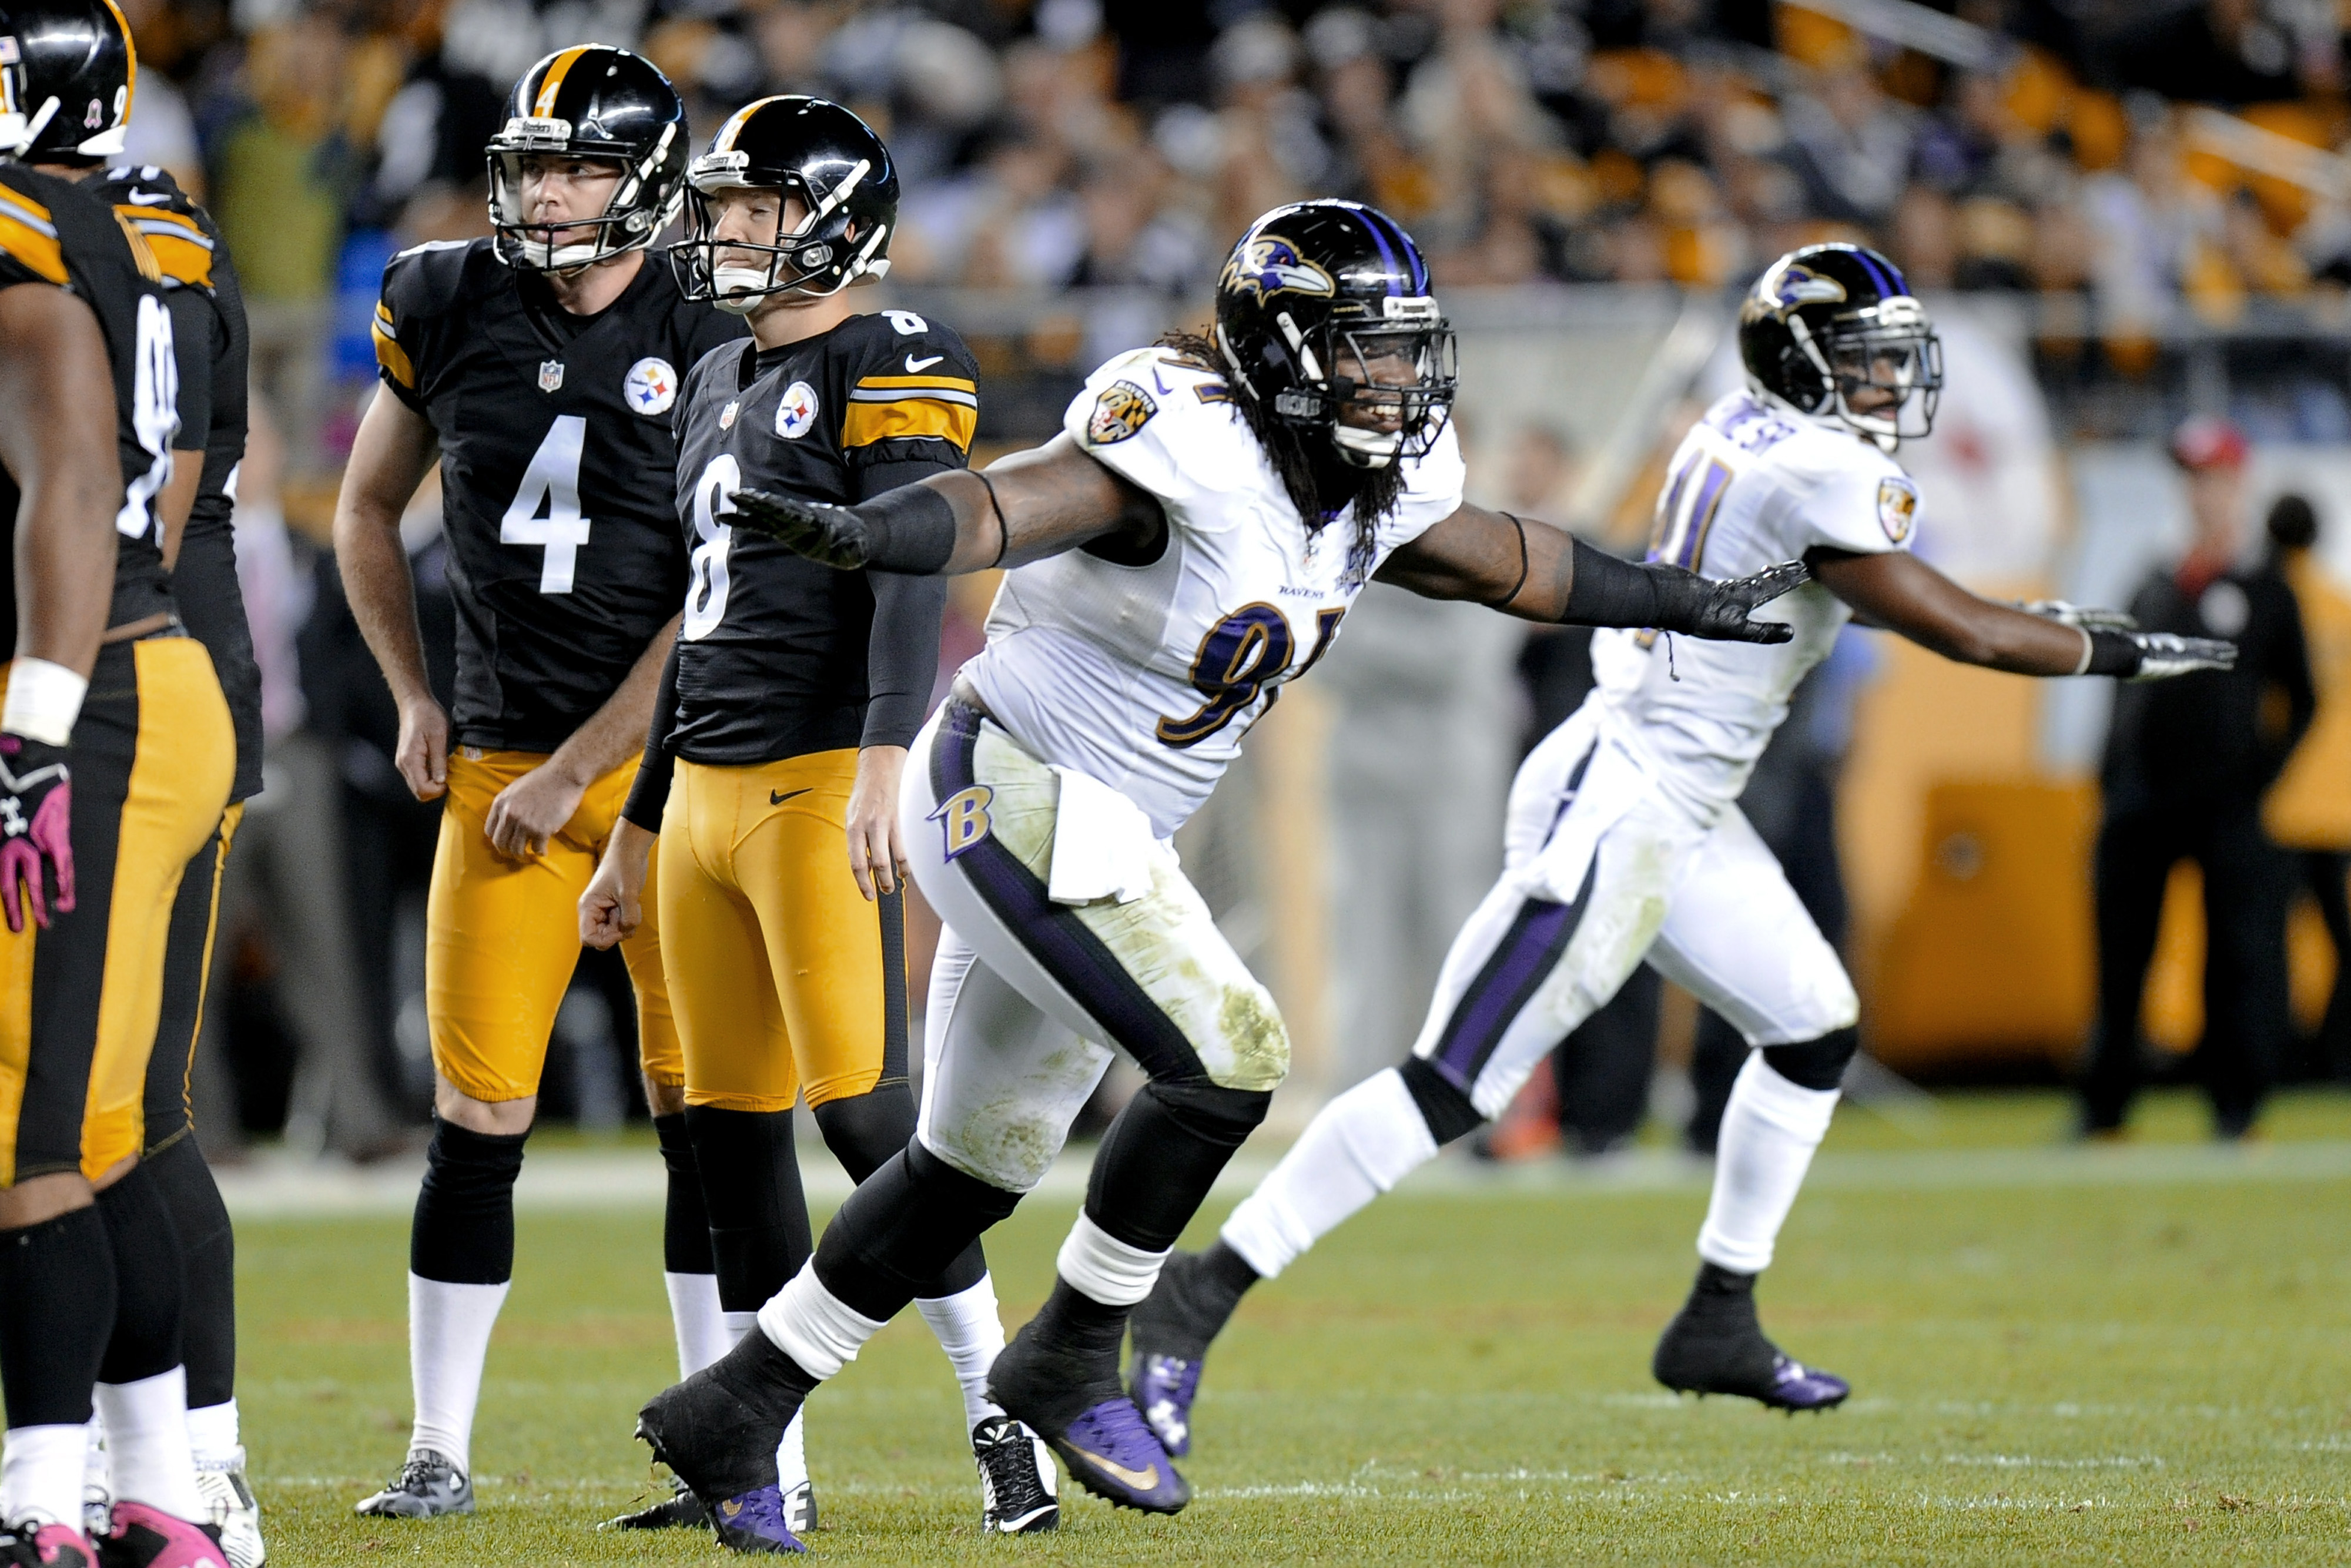 Baltimore Ravens outside linebacker Courtney Upshaw (91) and cornerback Anthony Levine (41) celebrate as Pittsburgh Steelers kicker Josh Scobee (8) misses afield goal in the fourth quarter of an NFL football game, Thursday, Oct. 1, 2015 in Pittsburgh. The